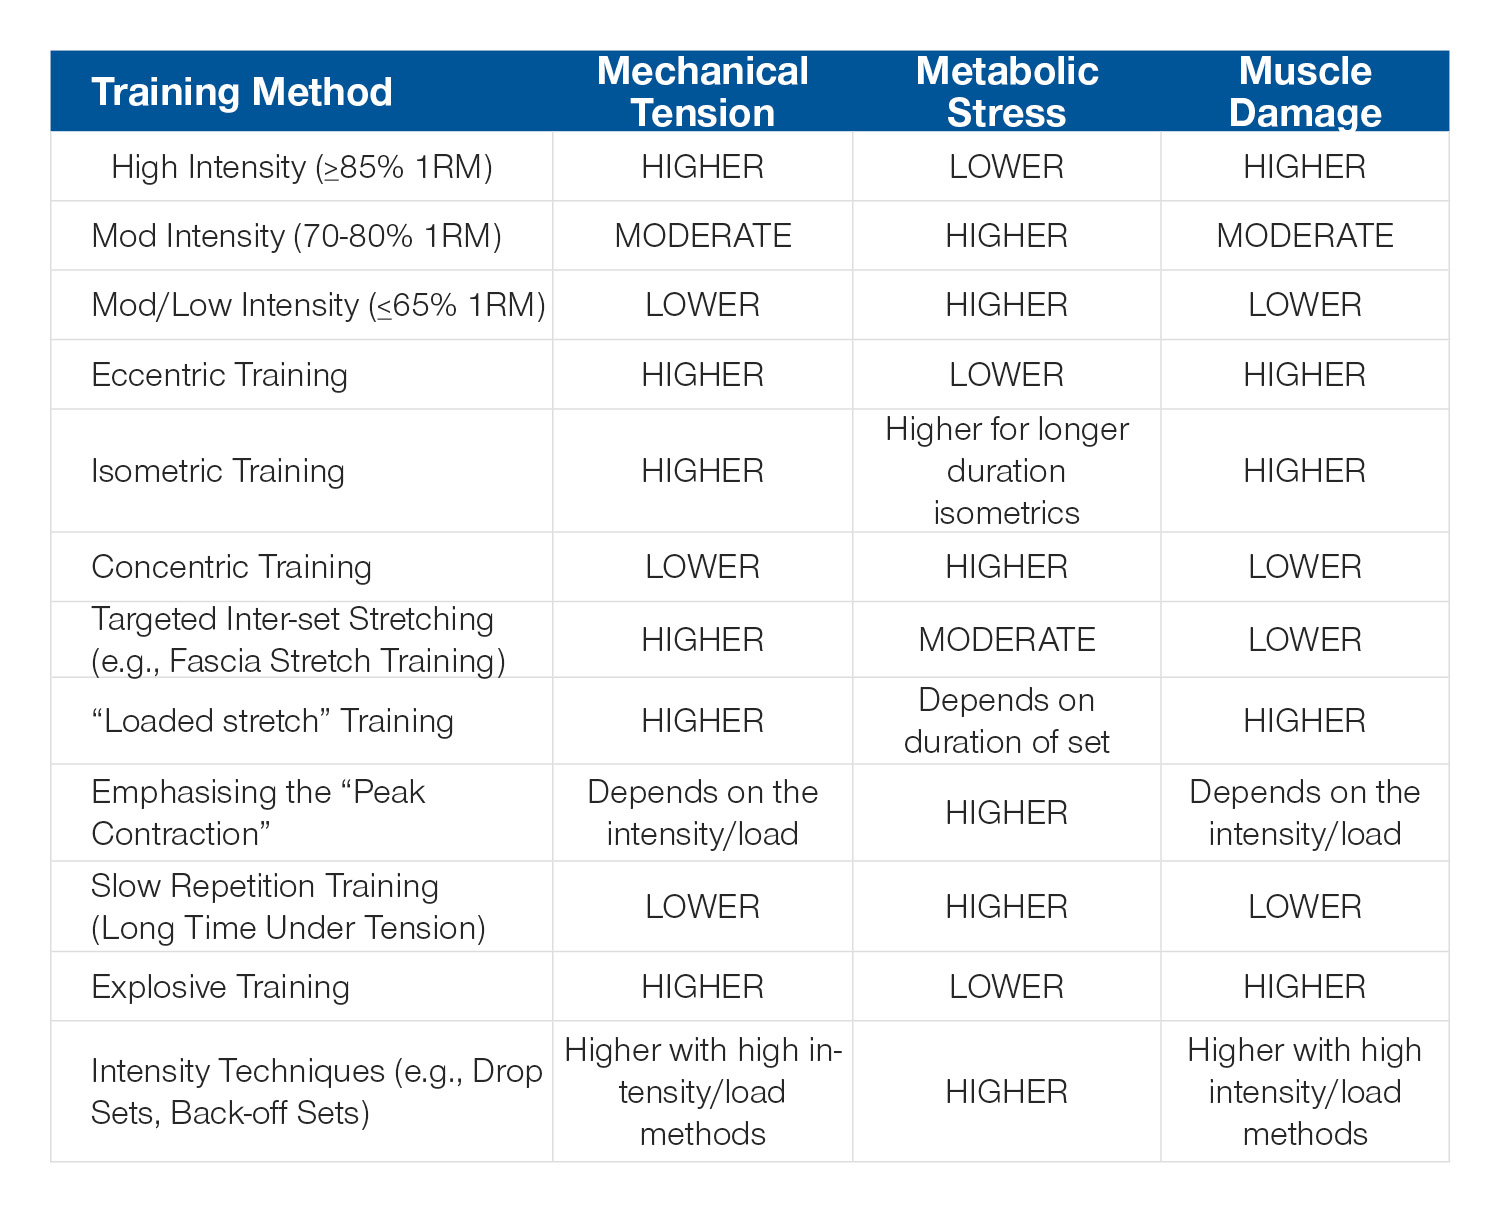 How to Combine Muscle Growth Factors Table